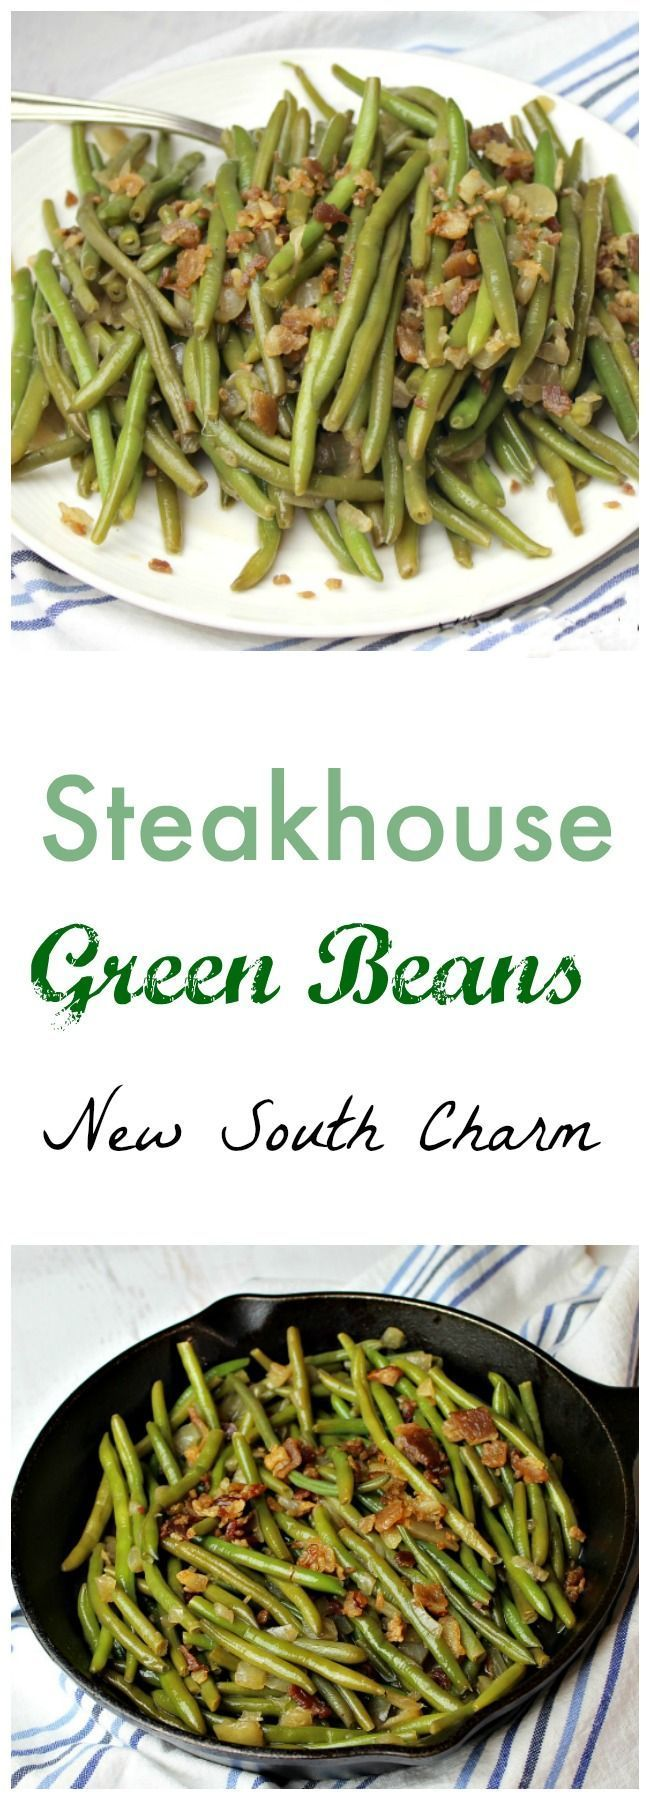 Steakhouse Green Beans are a great easy to make side dish for just about any meal.